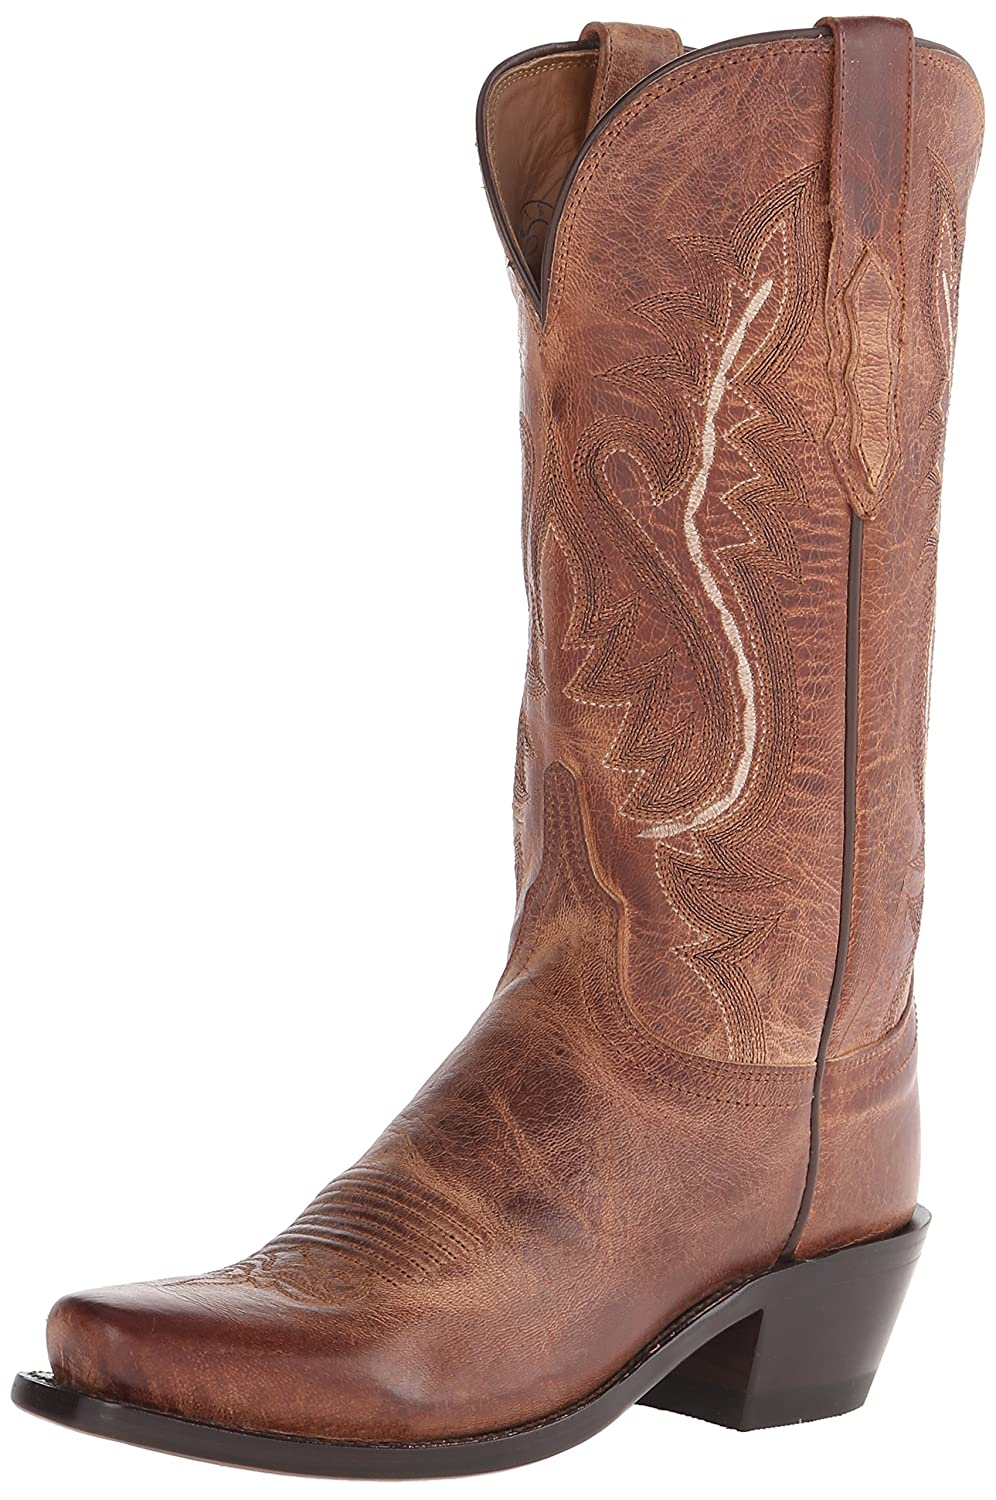 Lucchese Bootmaker Women's Cassidy-Tan Mad Dog Goat Riding Boot B00SBHDNW6 8.5 B(M) US|Tan Burnish